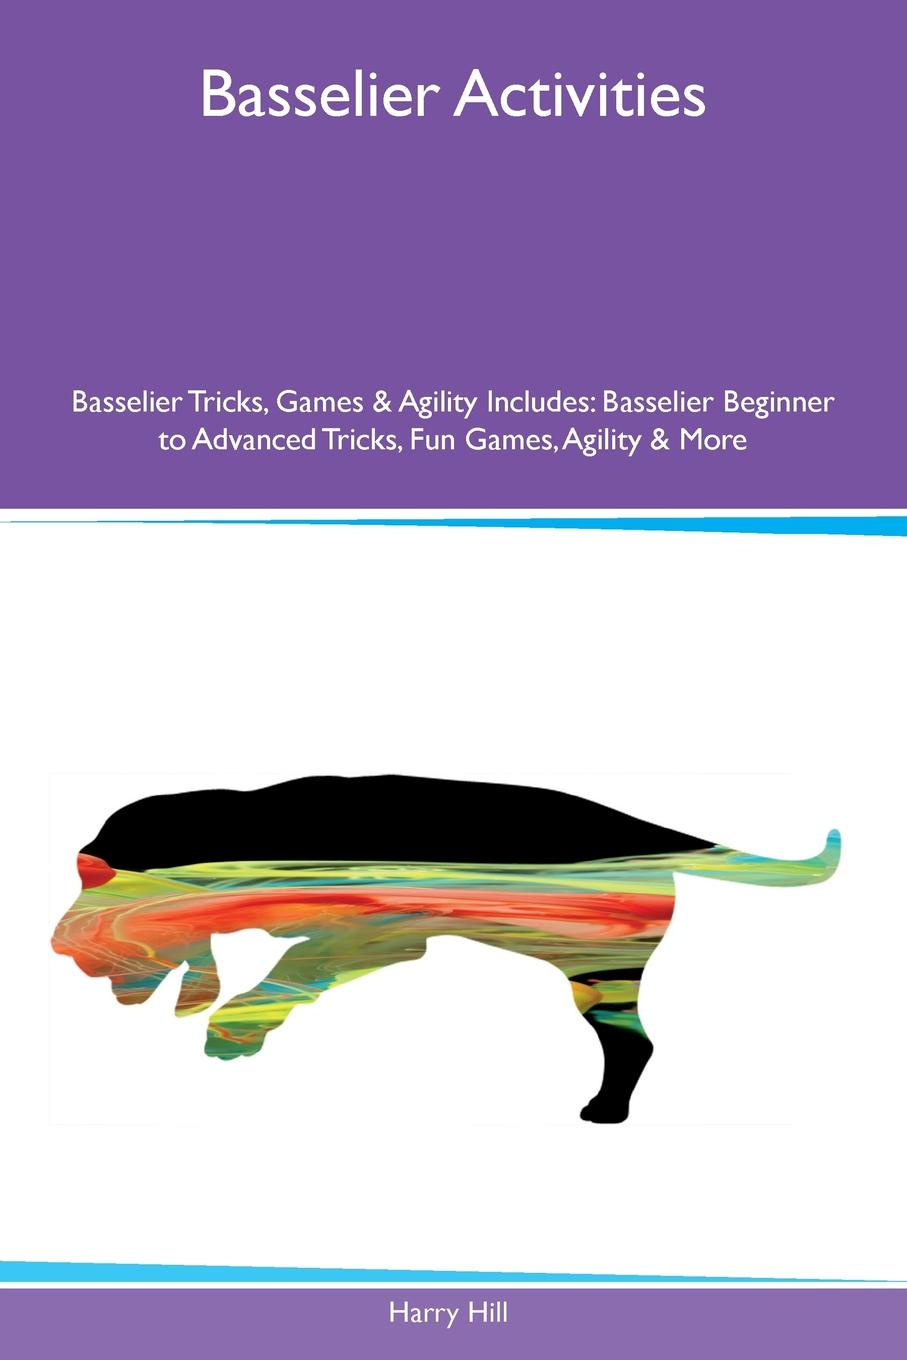 Basselier Activities Basselier Tricks, Games & Agility Includes. Basselier Beginner to Advanced Tricks, Fun Games, Agility & More